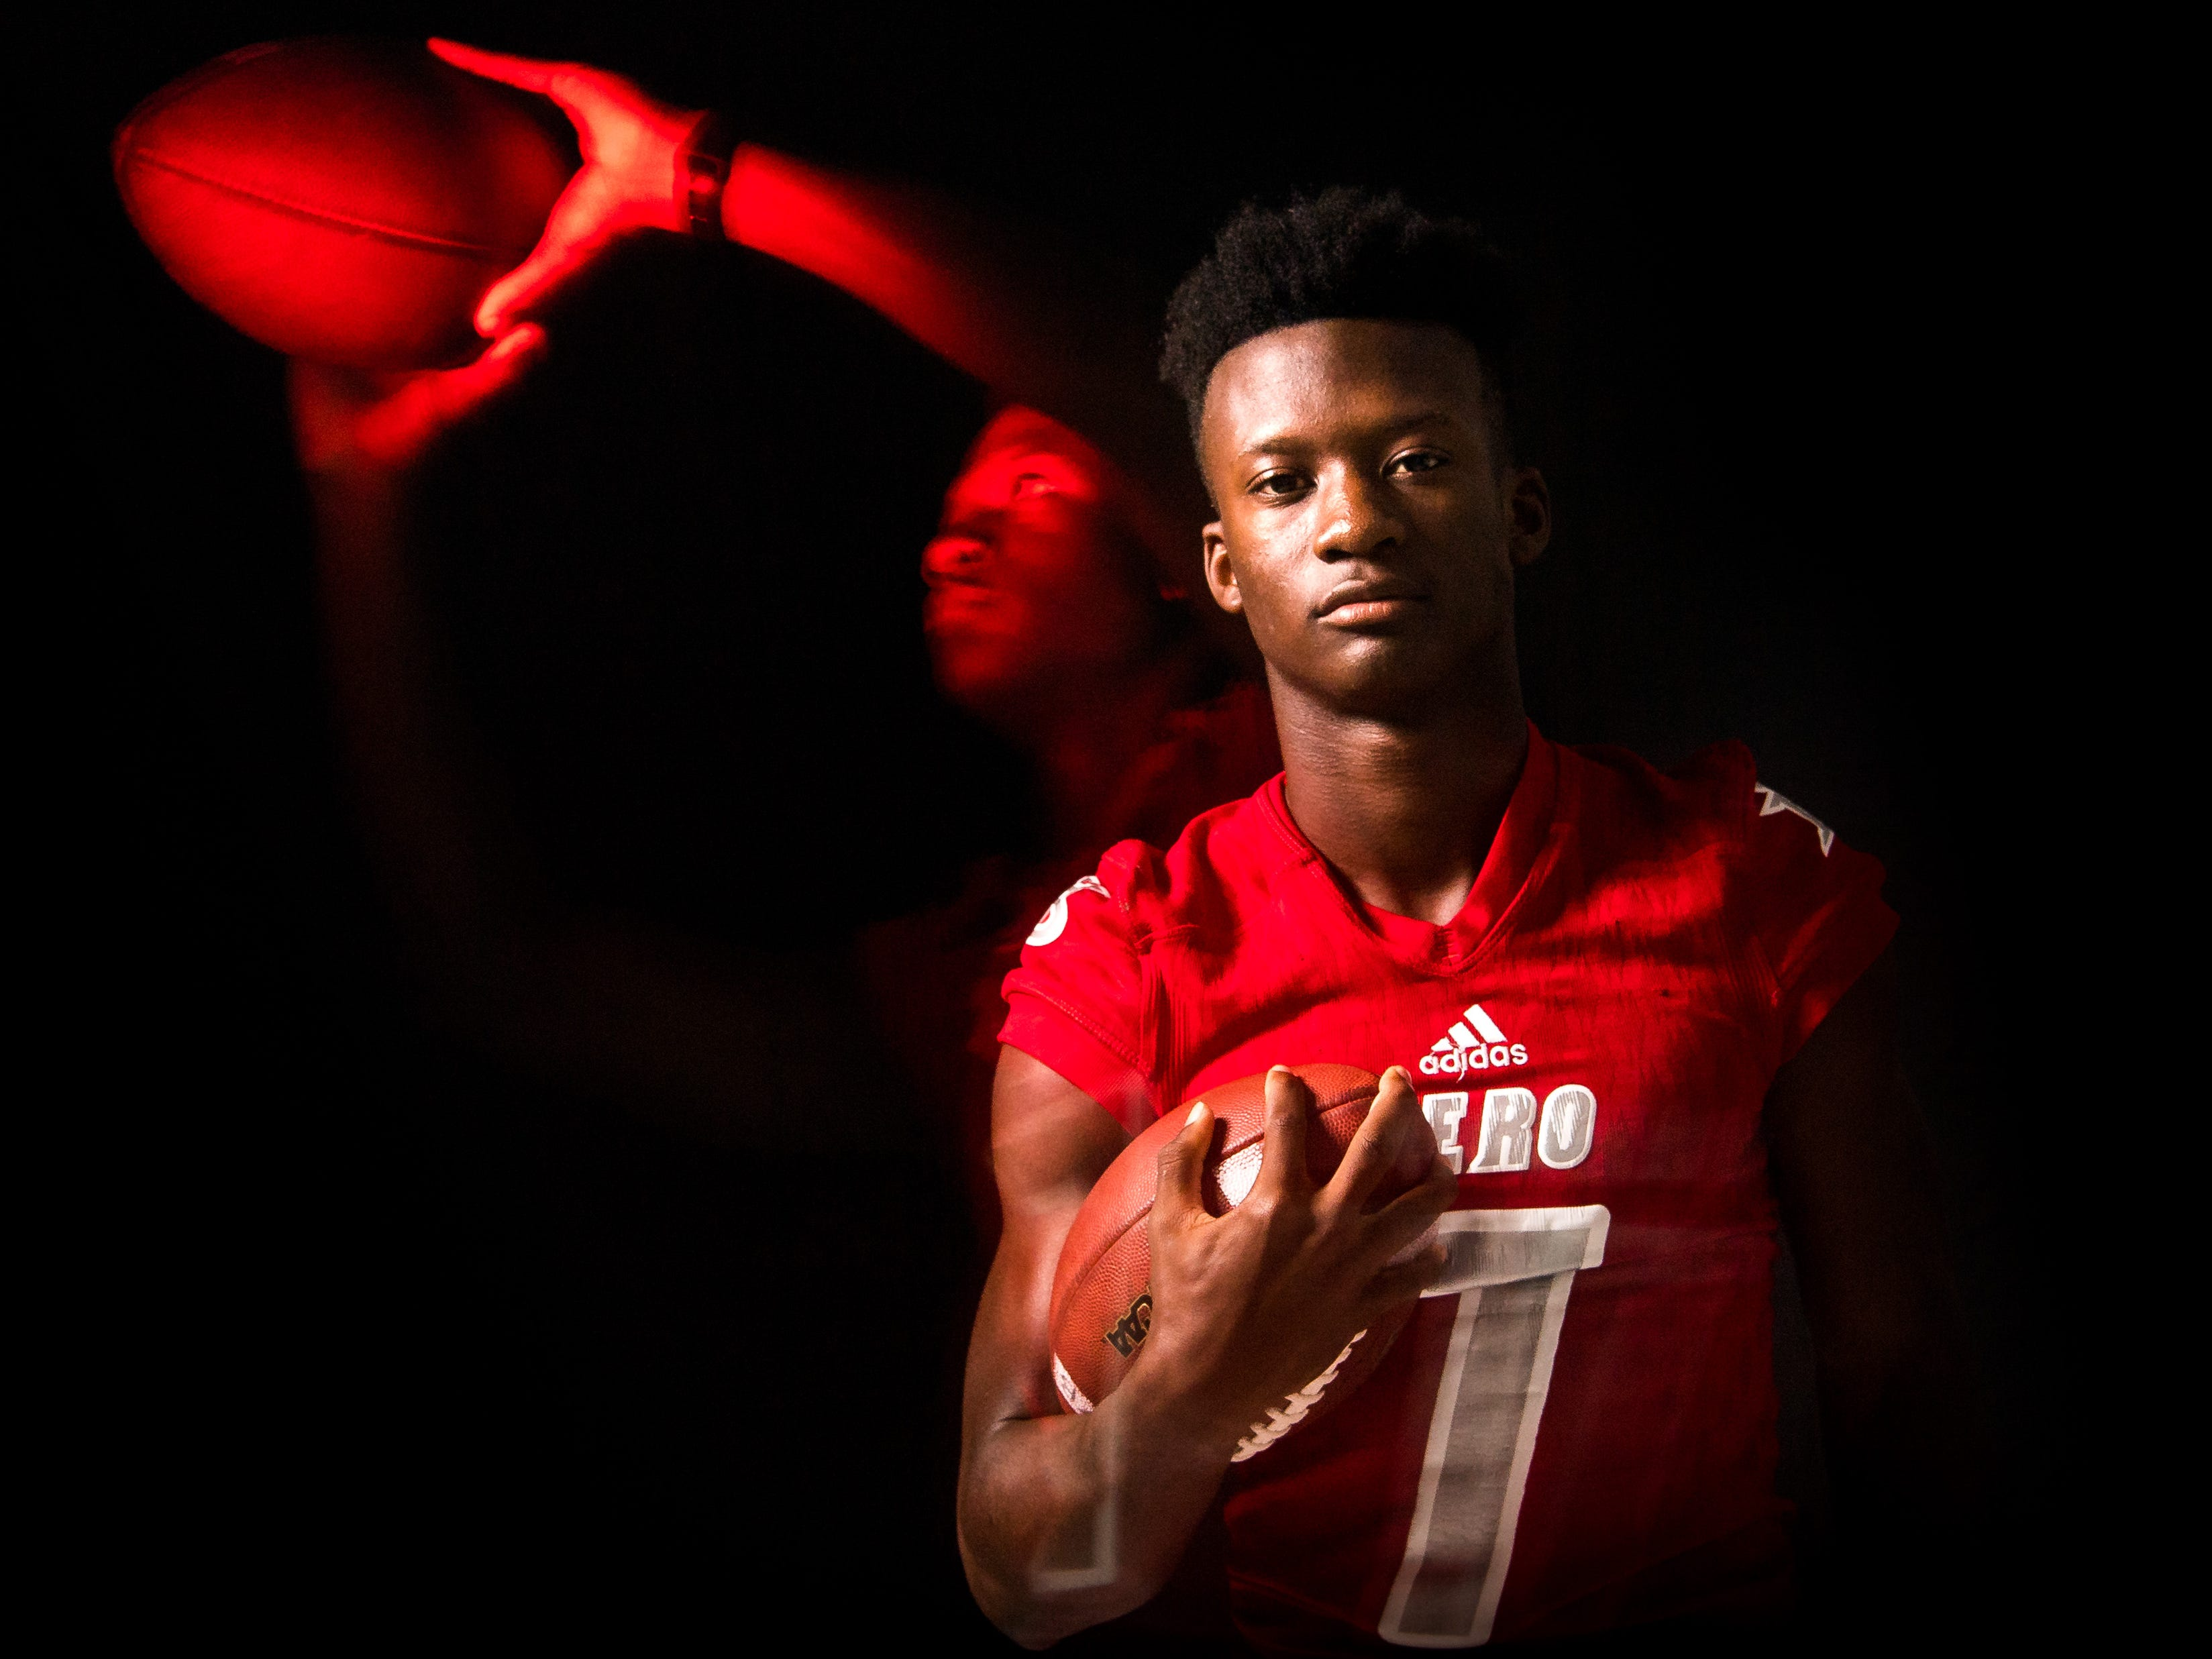 Keith Woulard, wide receiver for Vero Beach High School football, is photographed Wednesday, April 3, 2019, at TCPalm in Stuart.